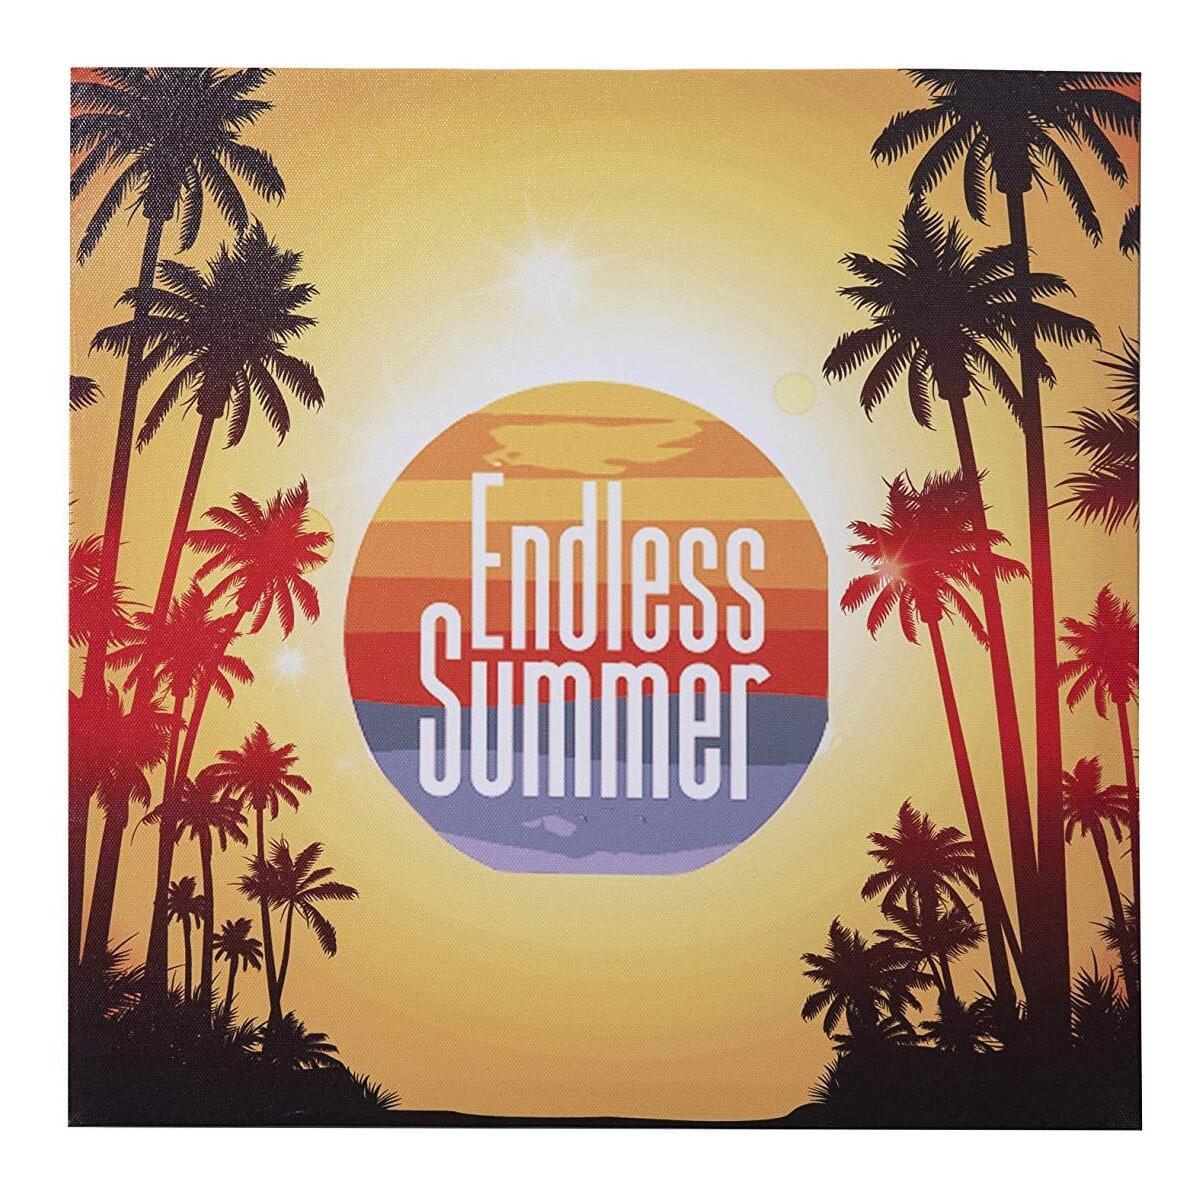 Badger Track Endless Summer written on Multi color Sun behind the Palm trees. Wall Canvas Framed Wall Art Modern Artwork for Living Room, Bedroom Decoration.